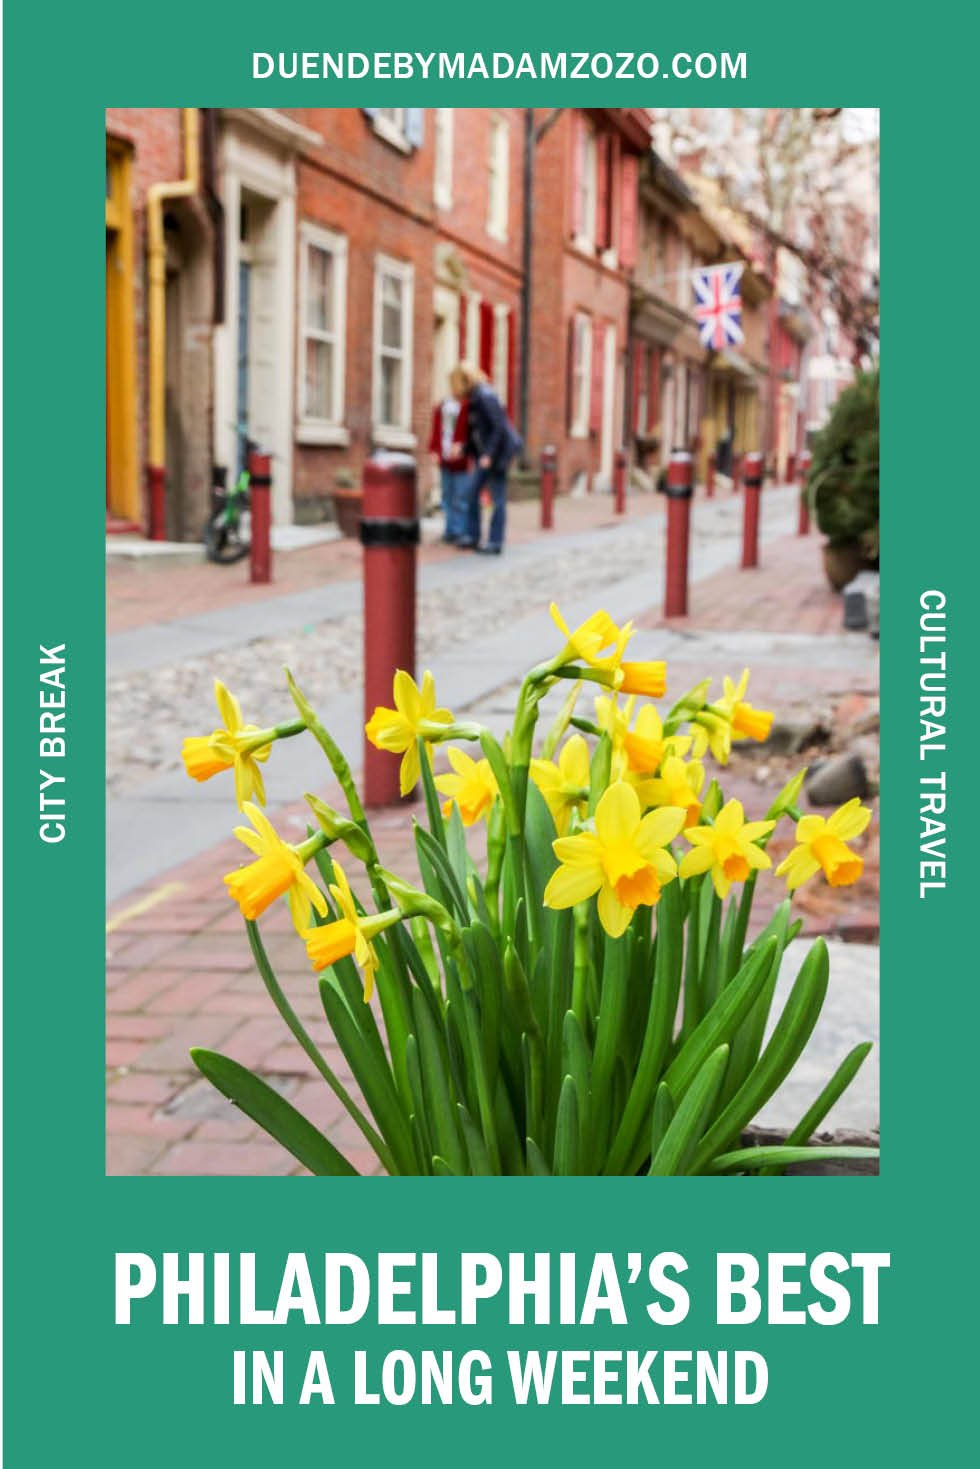 """Photo of daffodils in a historic residential street with text overlay reading """"Philadephia's Best in a Long Weekend"""""""